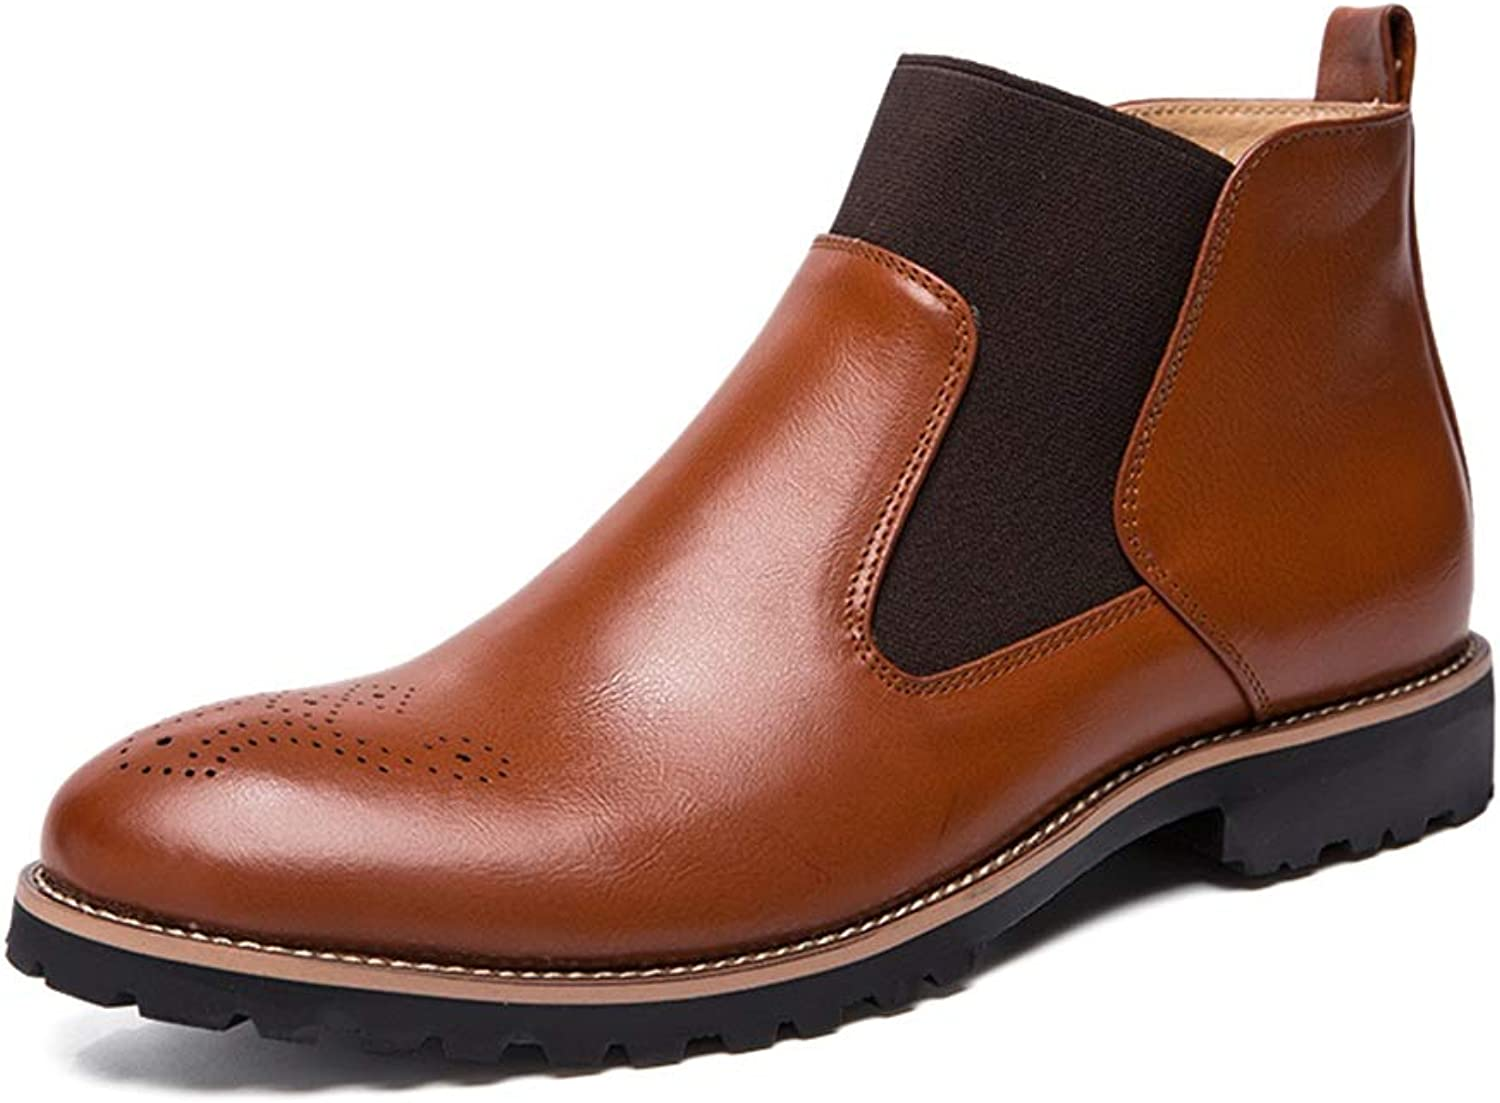 MUMUWU Men's Fashion Ankle Boots Casual Classic Engraving is Comfortable High Top Boot Semi Formal shoes (color   Brown, Size   10.5 D(M) US)